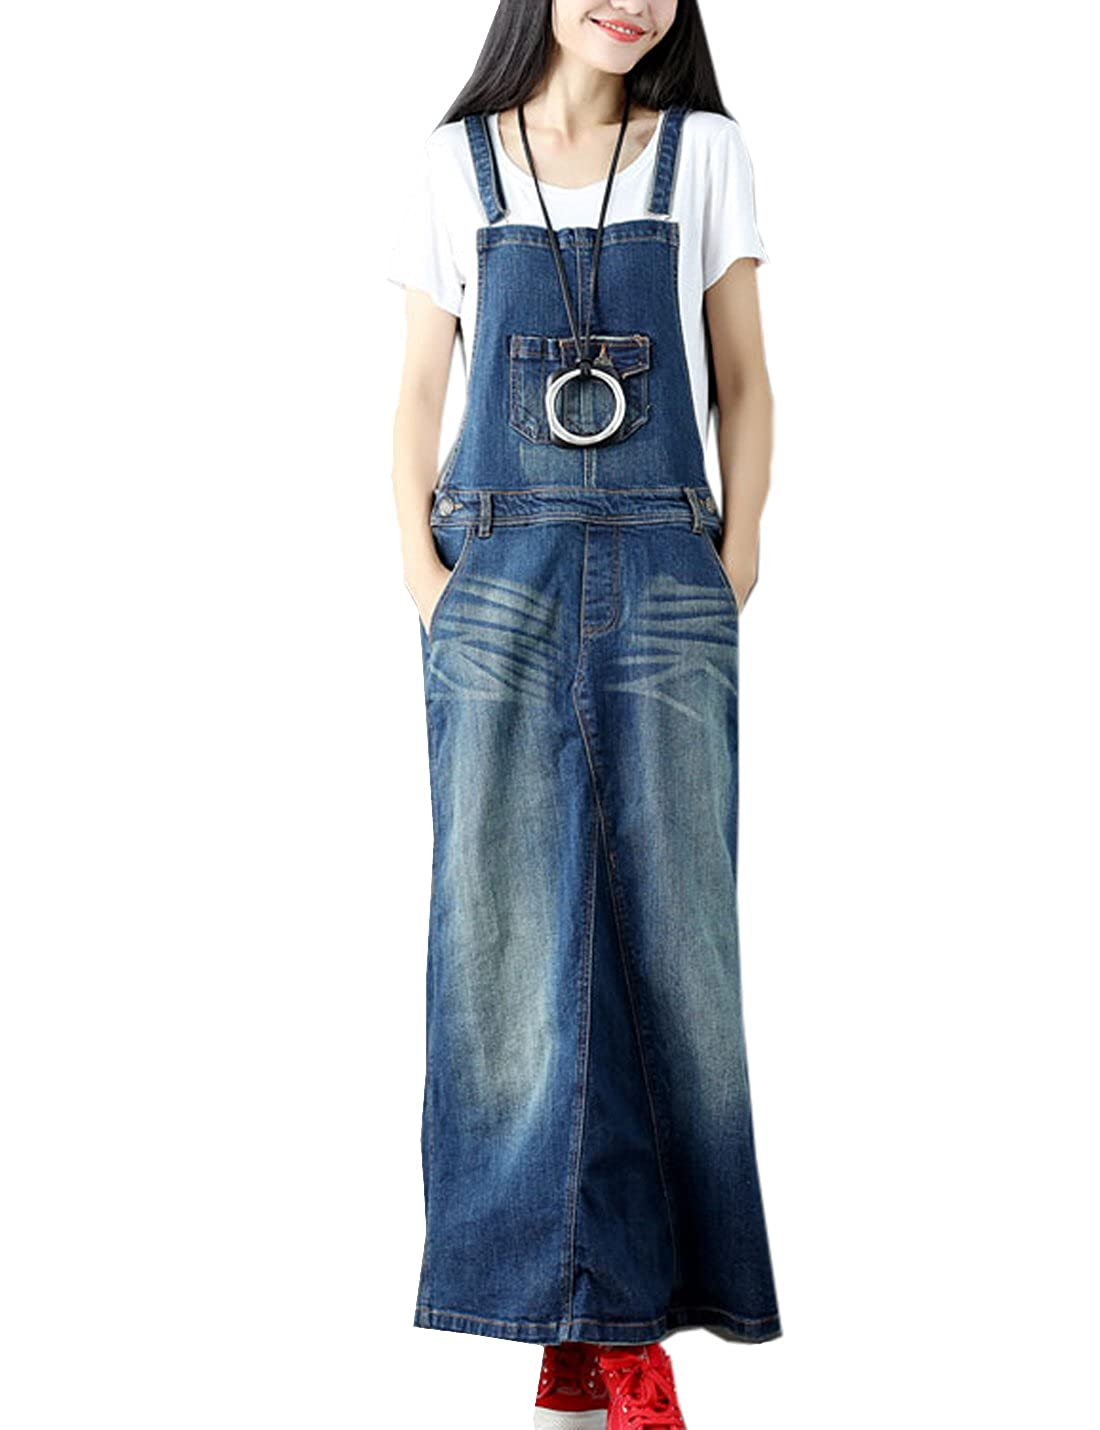 biggest selection great discount sale amazing quality Flygo Women's Elegant Ankle Length Long Denim Jeans Jumpers Overall  Pinafore Dress Skirt